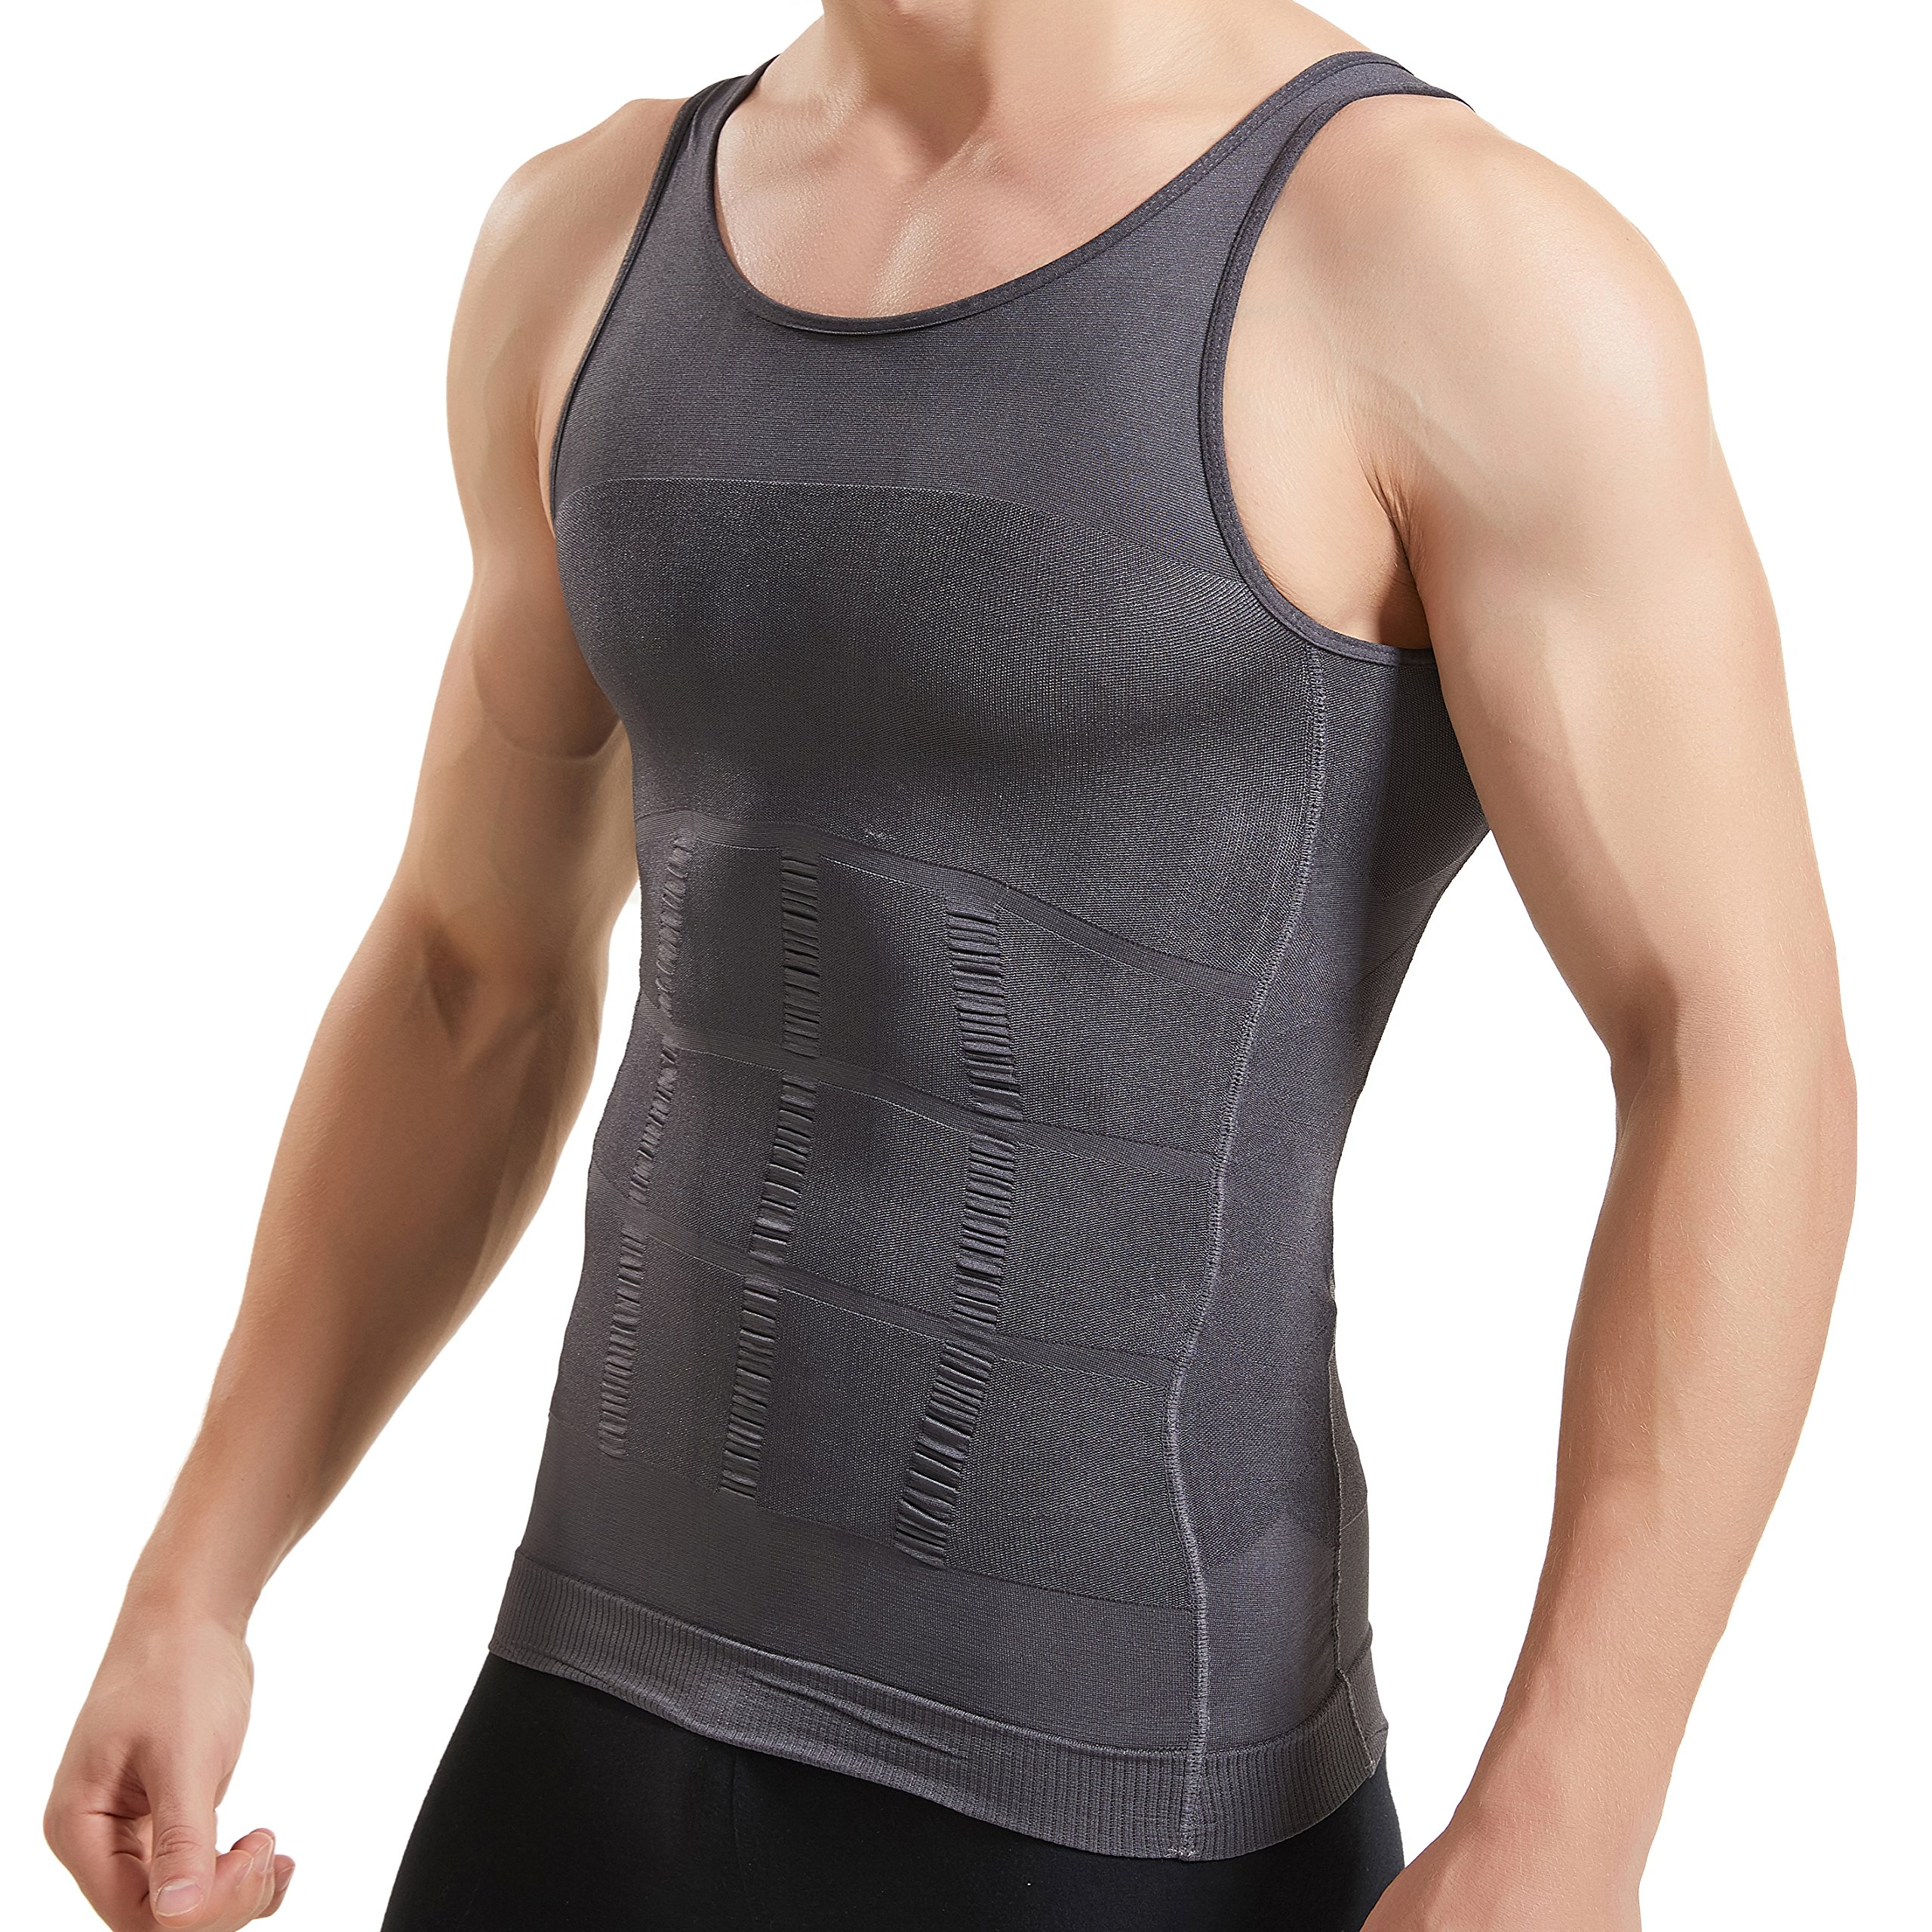 UnsichtBra Muscle Tank Compression Figure-Forming Slimming Men/'s Undershirt